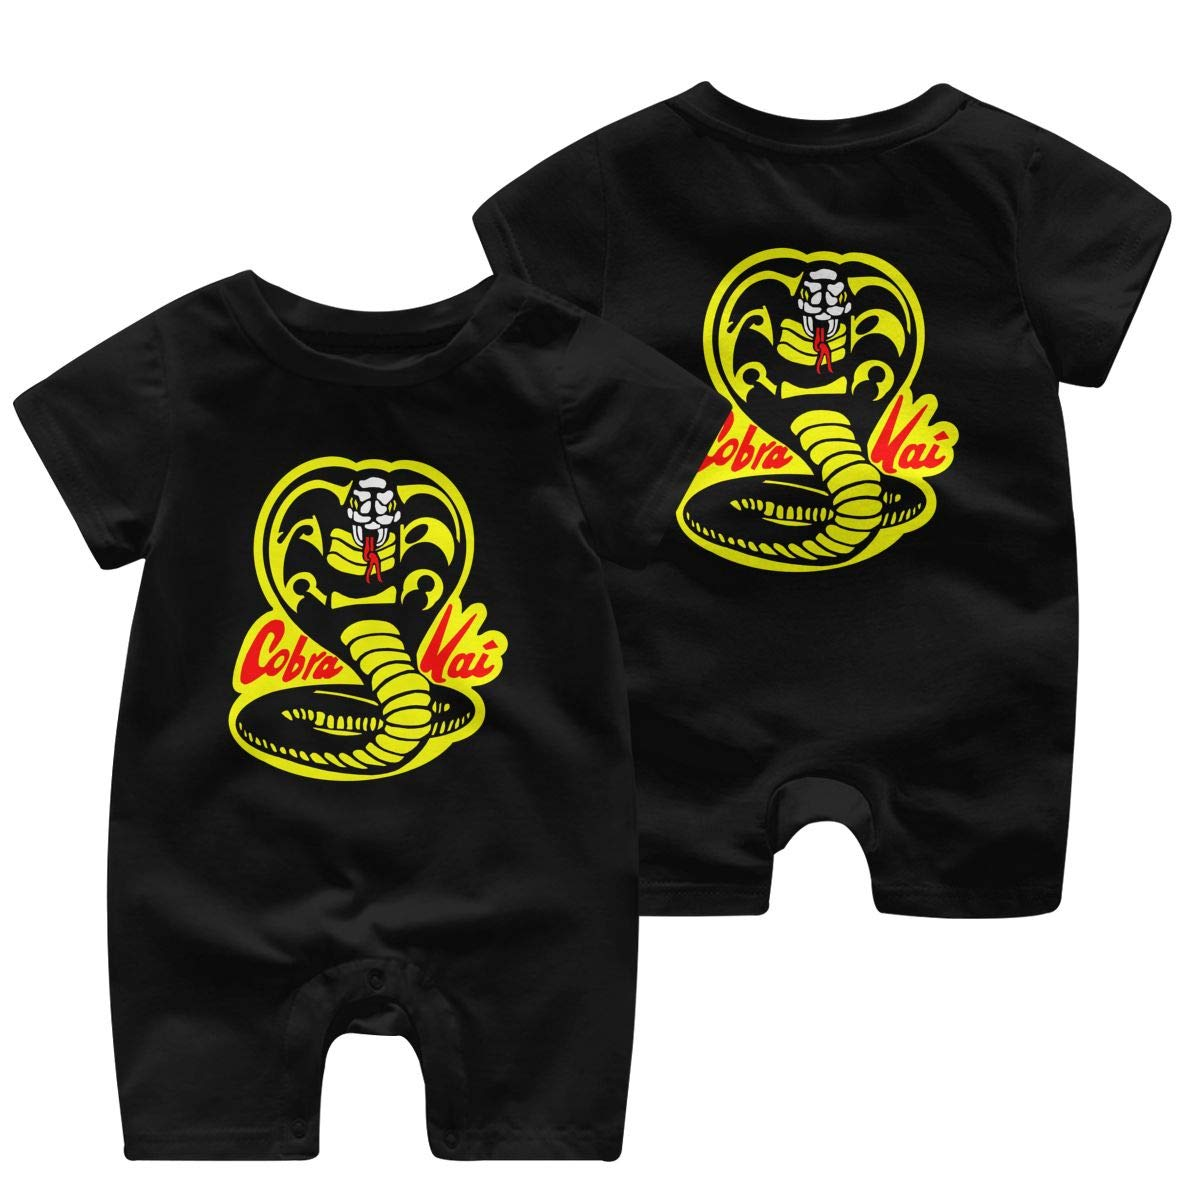 Cobra Kai Baby Jumpsuit Boys Girls 100/% Cotton Short Sleeve Rompers Double Print